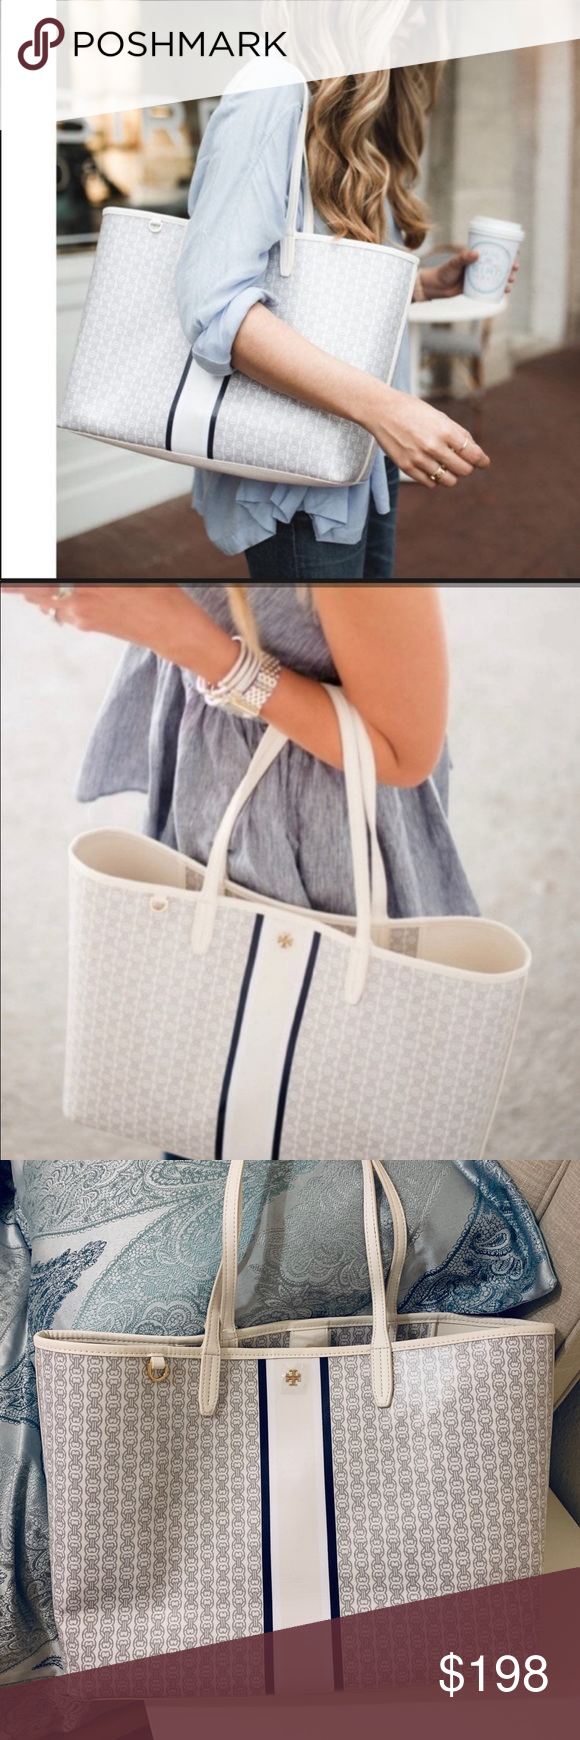 Tory Burch Gemini link tote in ivory color Holds a 15 laptop, a pair of flats, a continental wallet, a small umbrella and a phone Water-resistant coated canvas Magnetic snap  closure Shoulder straps with 9.16 (23 cm) drop 1 interior hanging pocket Height: 11.55 (29 cm); length: 15.54 (39 cm); depth: 5.78 (14.5 cm) Popular ivory color Tory Burch Bags Totes #smallumbrella Tory Burch Gemini link tote in ivory color Holds a 15 laptop, a pair of flats, a continental wallet, a small umbrella and #smallumbrella